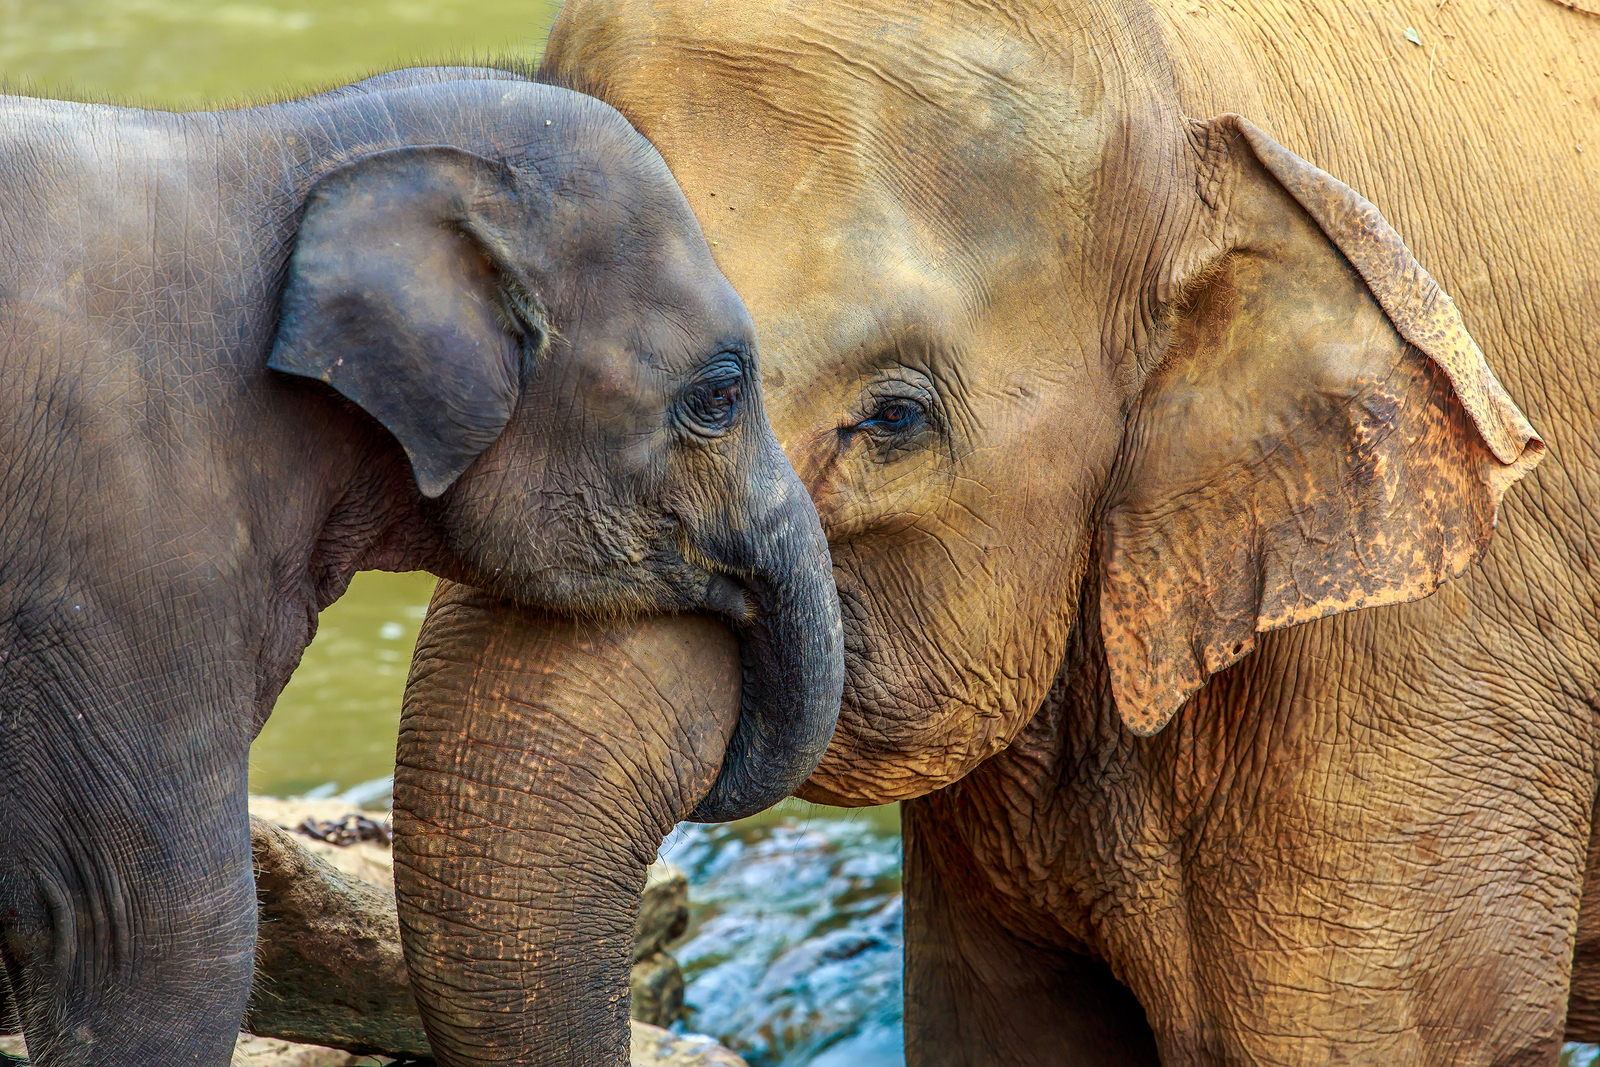 Karl G. asks: Why do we call an elephant?s nose a trunk?